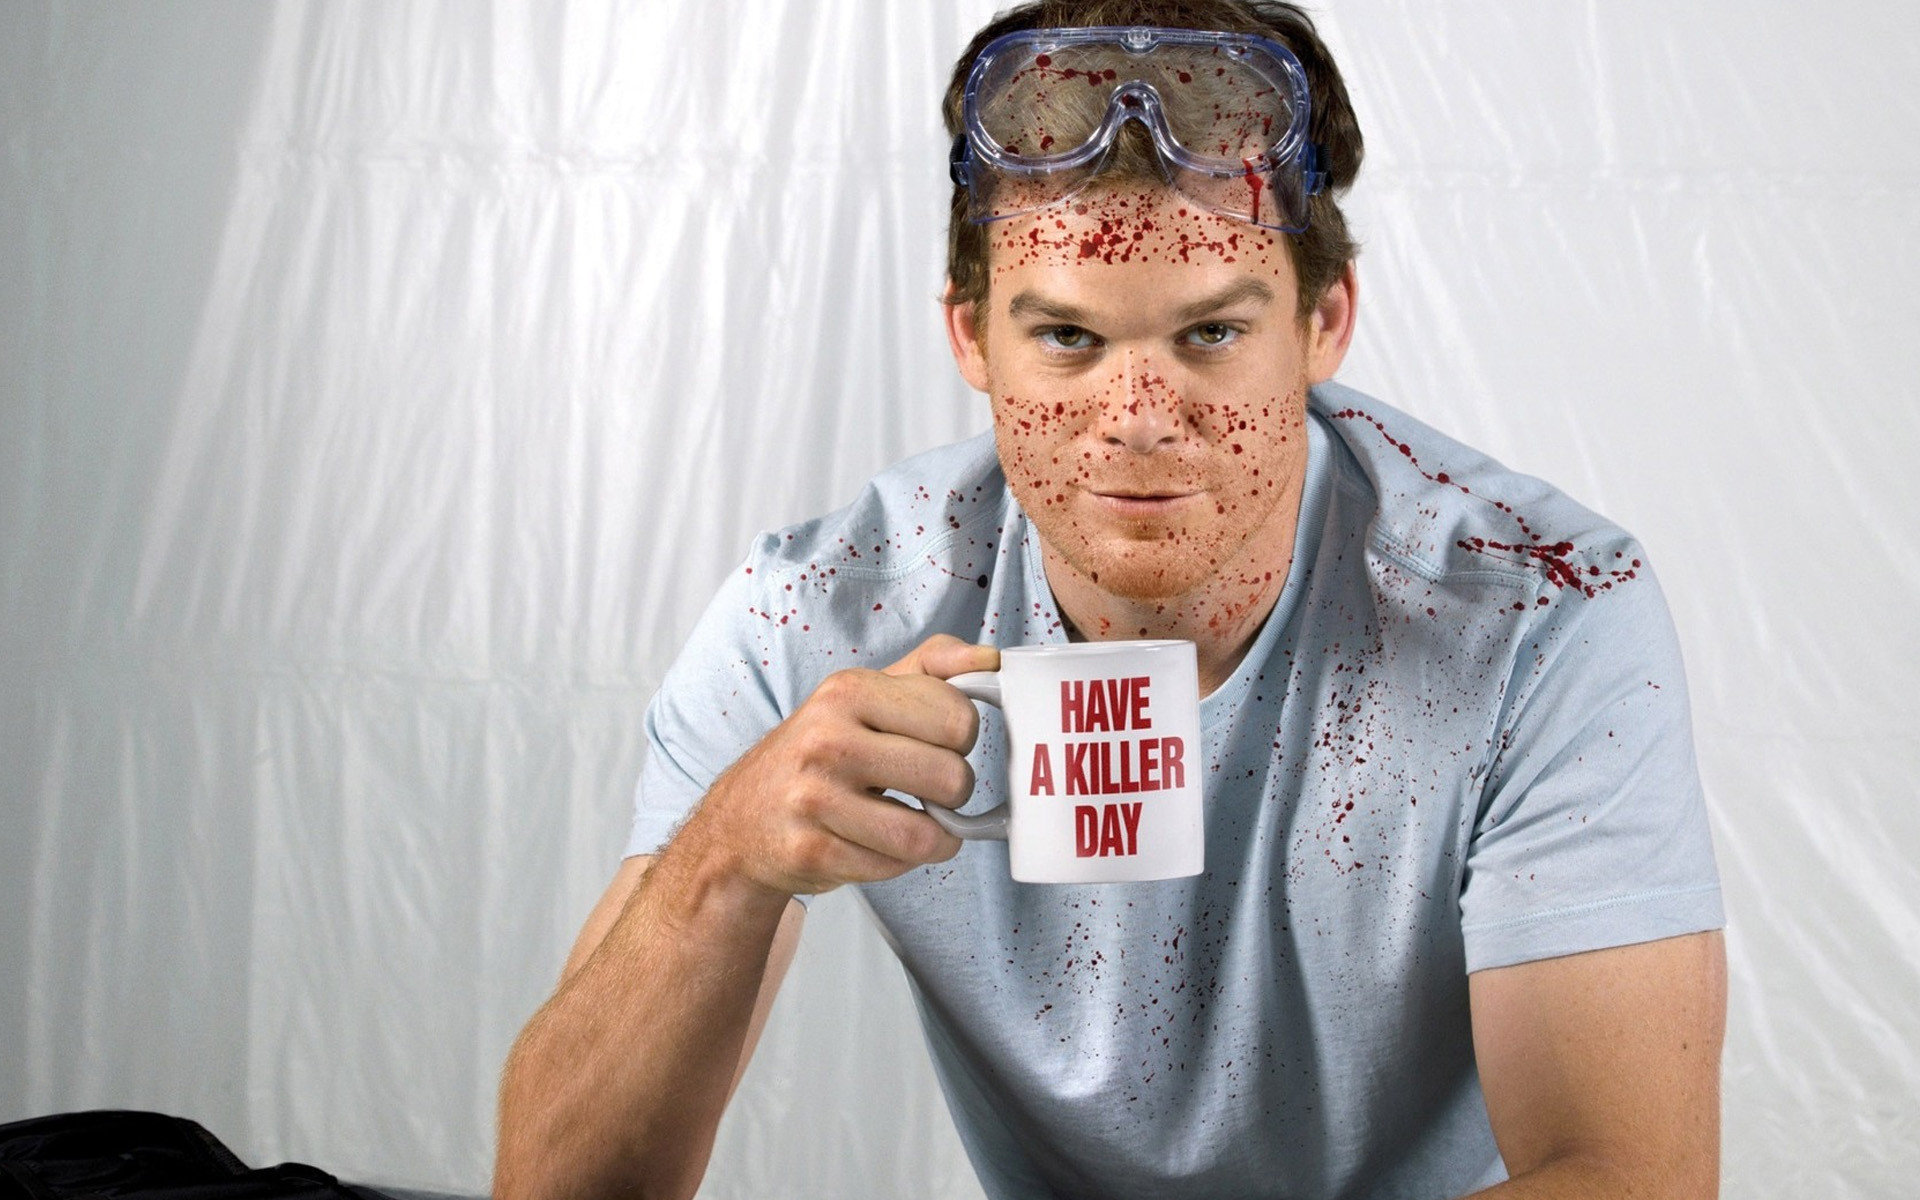 Awesome Dexter free wallpaper ID:275854 for hd 1920x1200 desktop